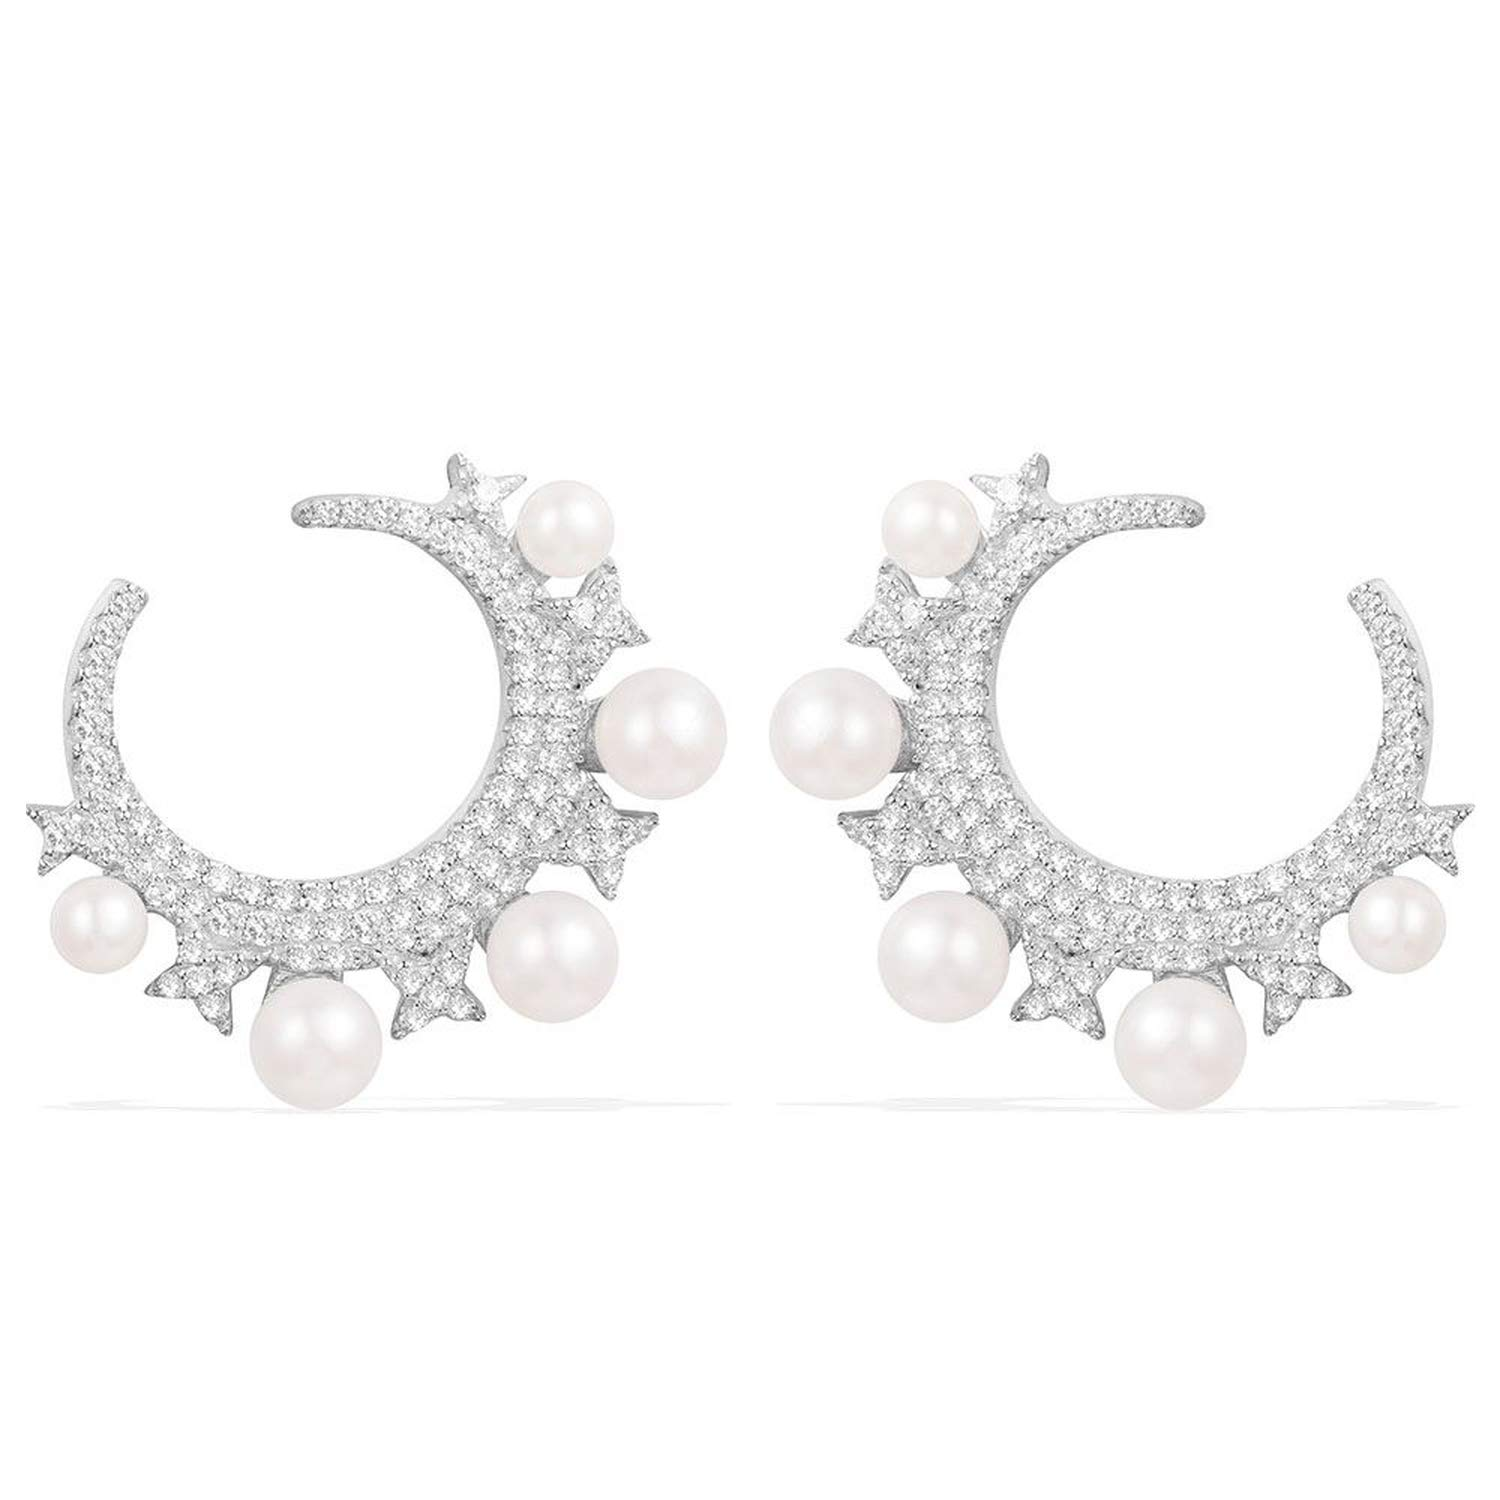 New 925 Sterling Silver Moon Earrings With Pearls Gifts Moroccan Style and Modern Classic Jewelry